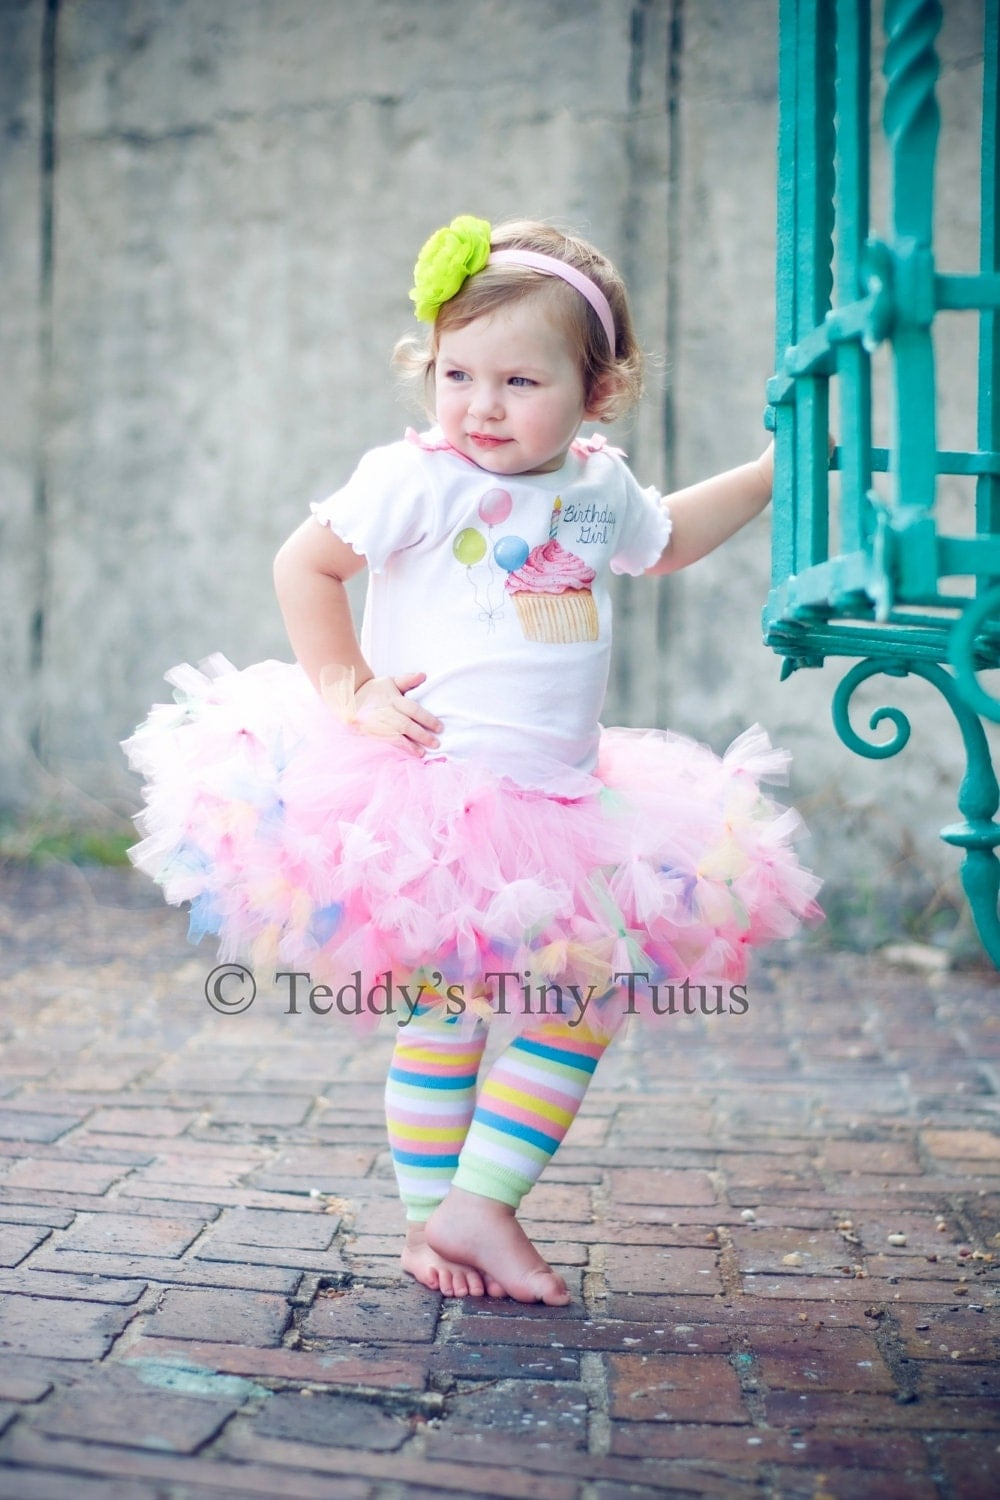 Shop our latest collection of baby girl birthday party outfits! With lots of dress designs and sets for all seasons (spring/summer and fall/winter), you will be inspired to choose the best for your little one!